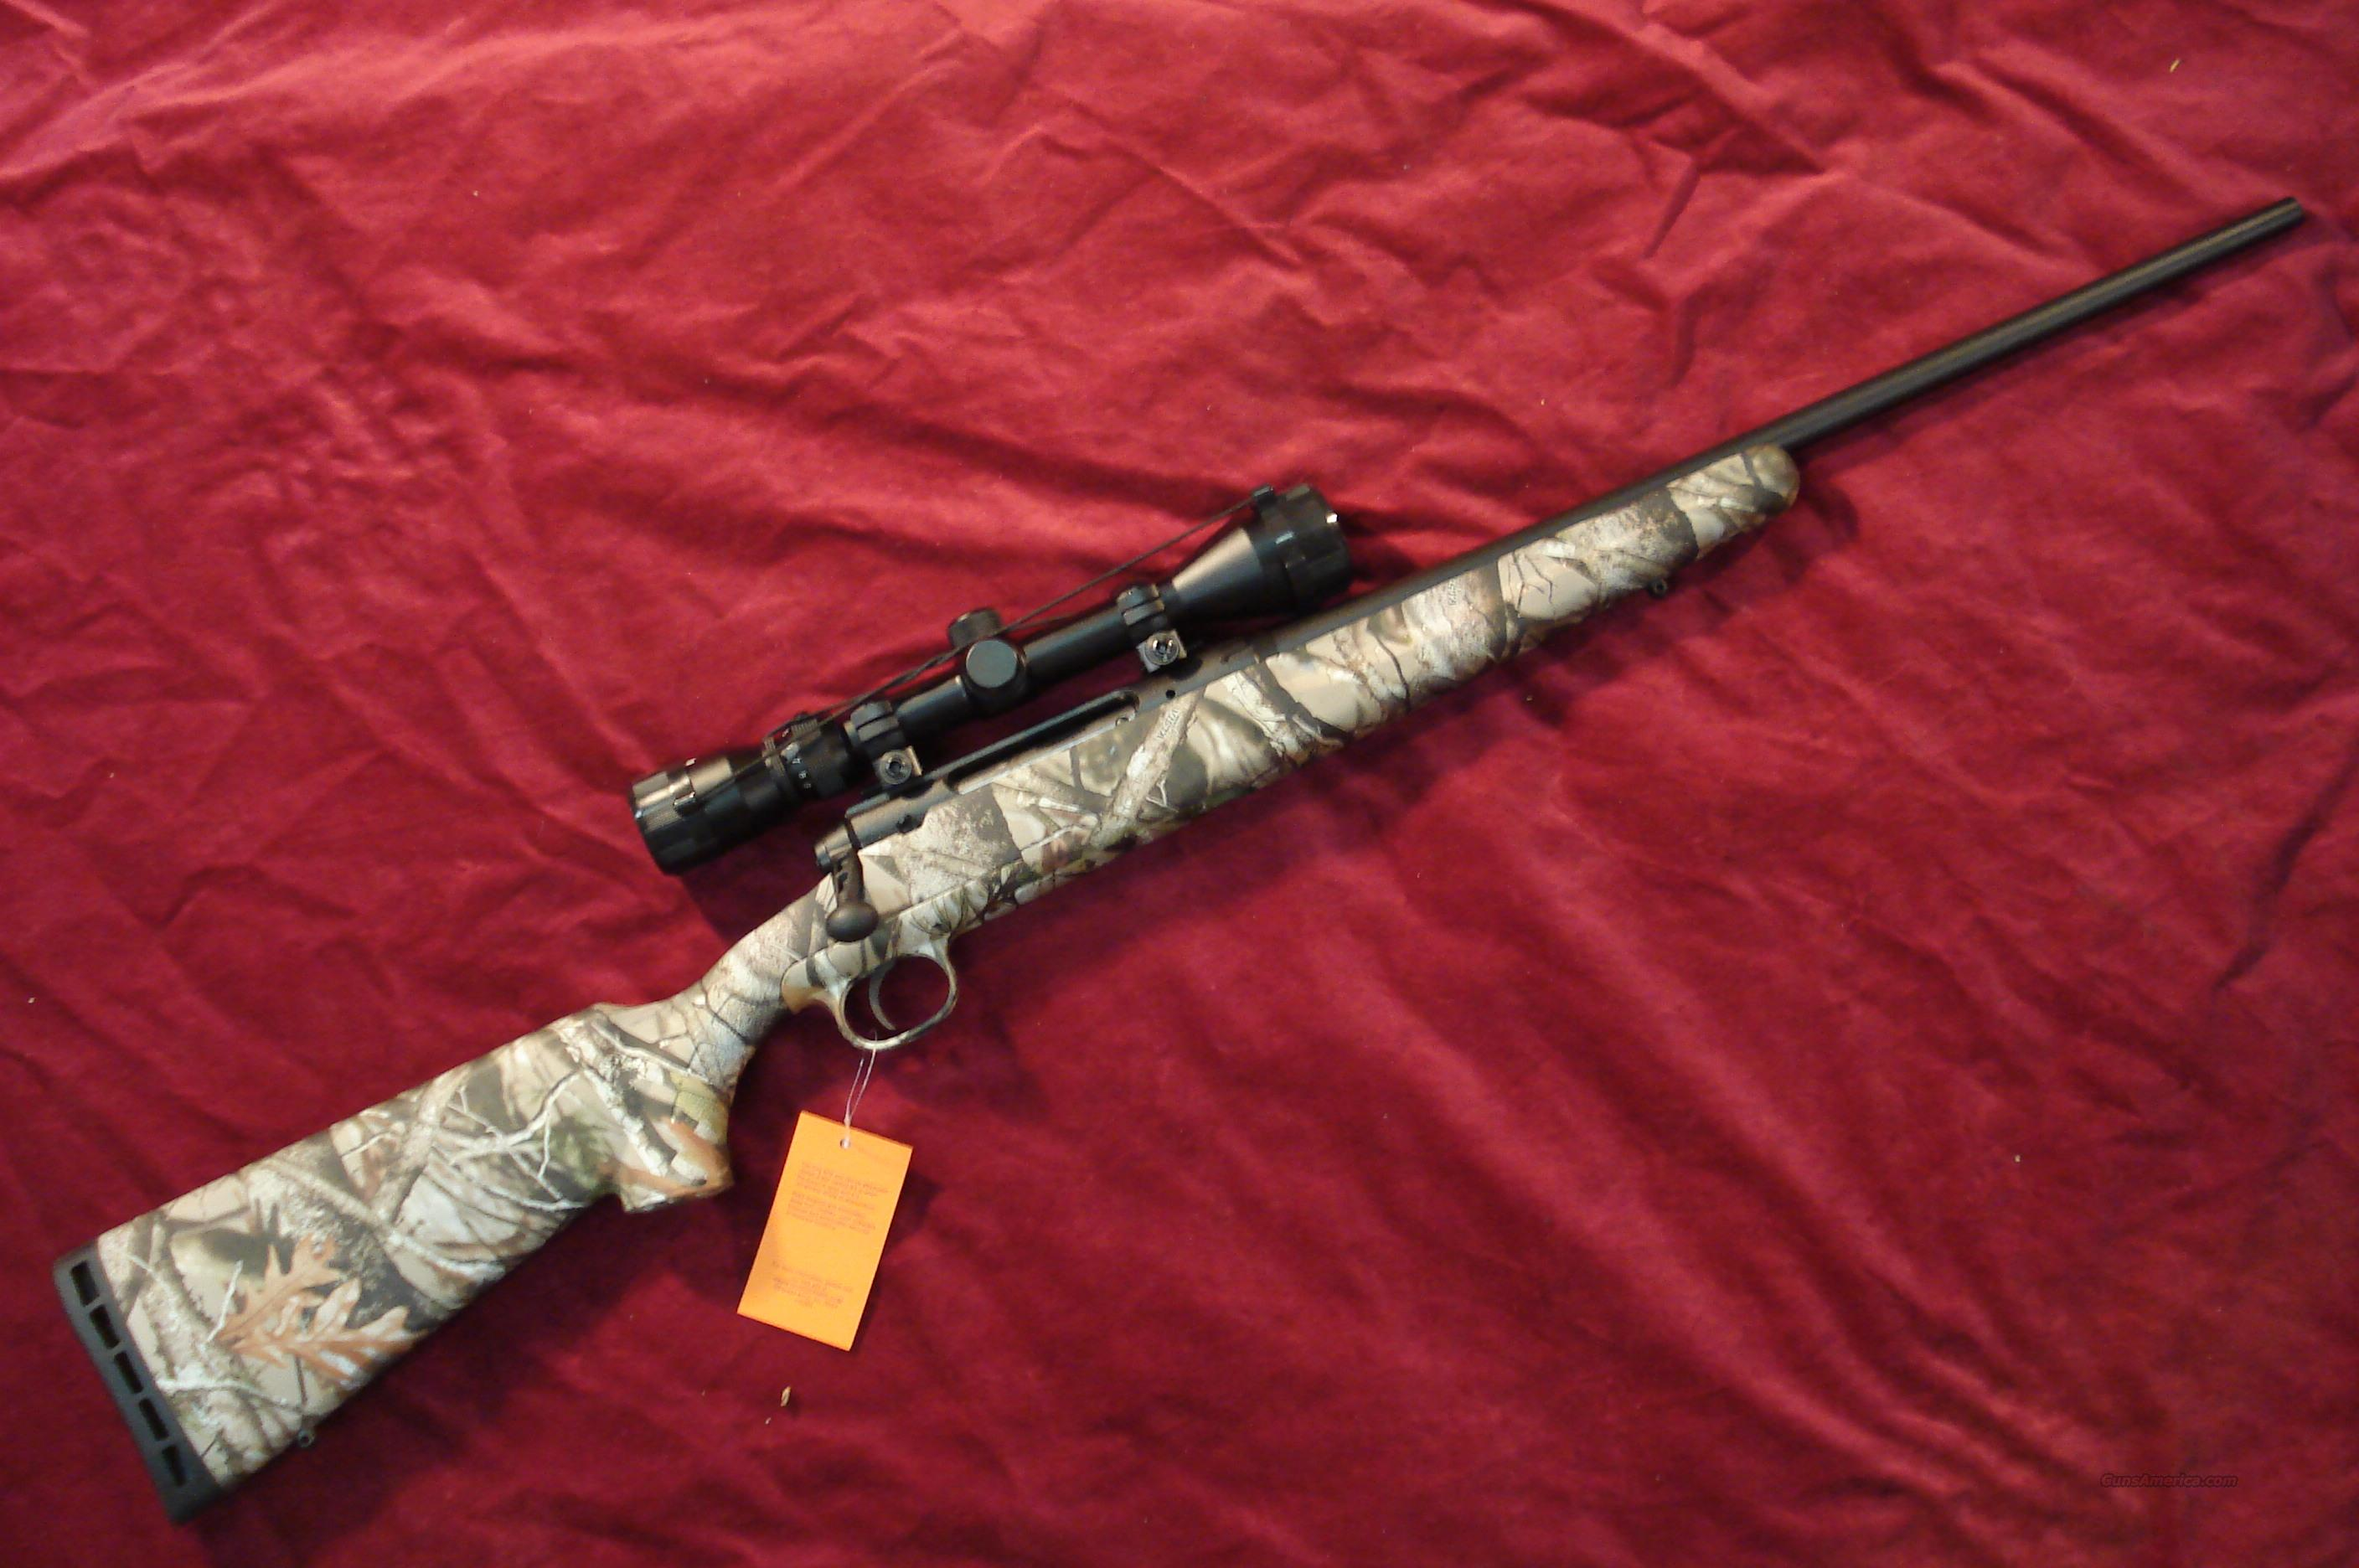 SAVAGE AXIS 22-250CAL. CAMO SCOPE PACKAGE NEW  Guns > Rifles > Savage Rifles > Standard Bolt Action > Sporting